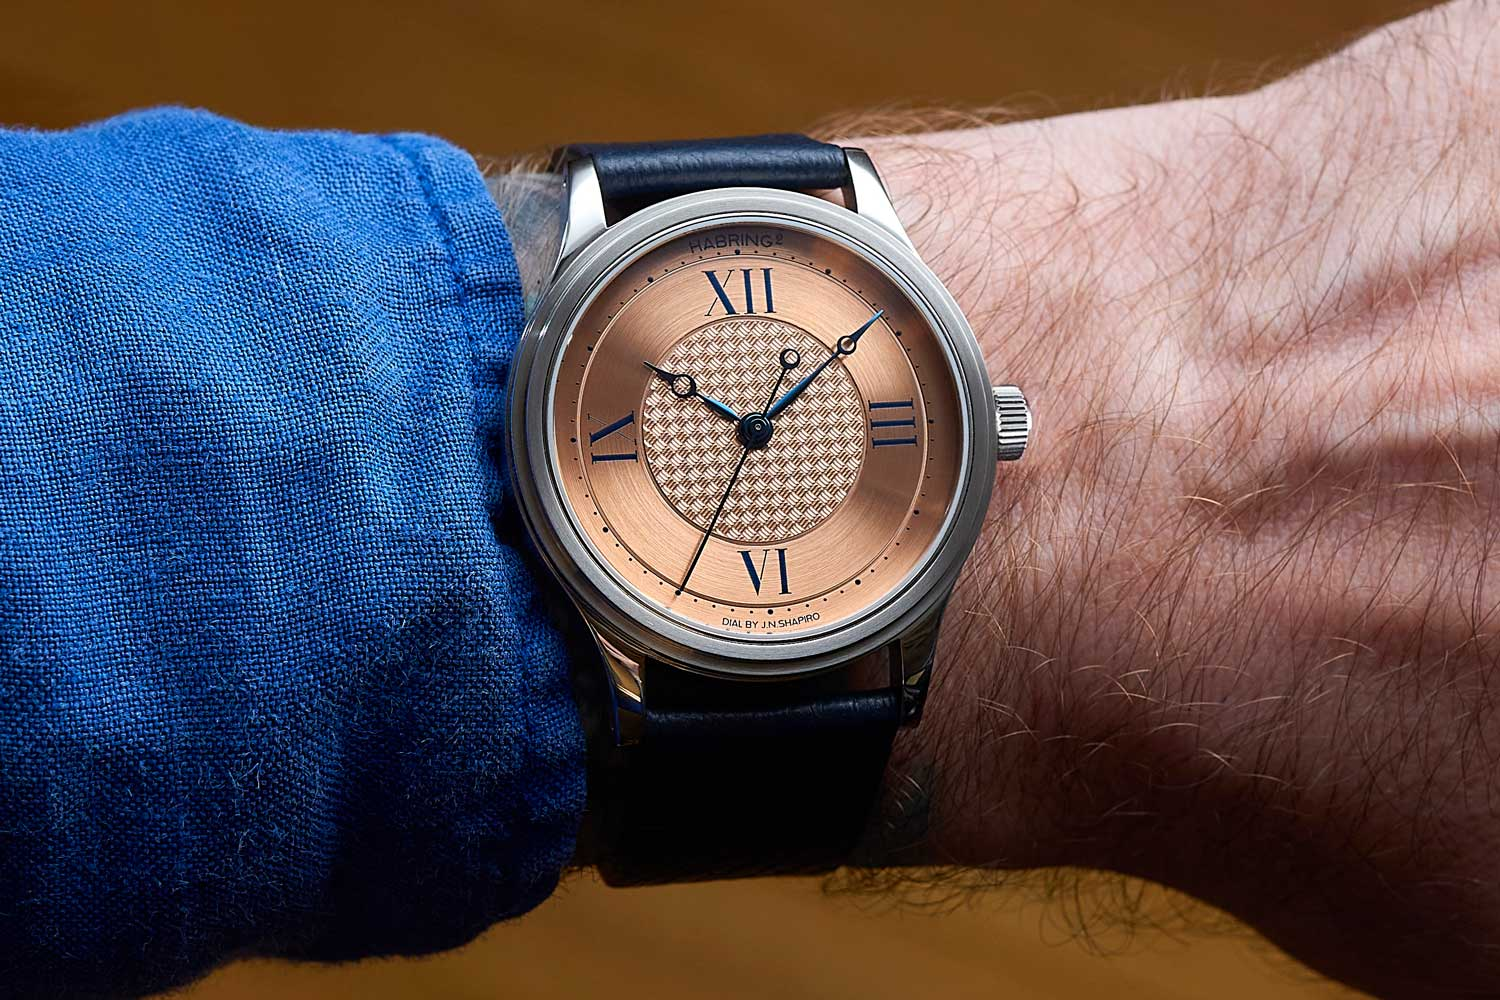 The warm salmon tones are the perfect way to show off the fine basket weave guilloché on the dial made by J.N. Shapiro